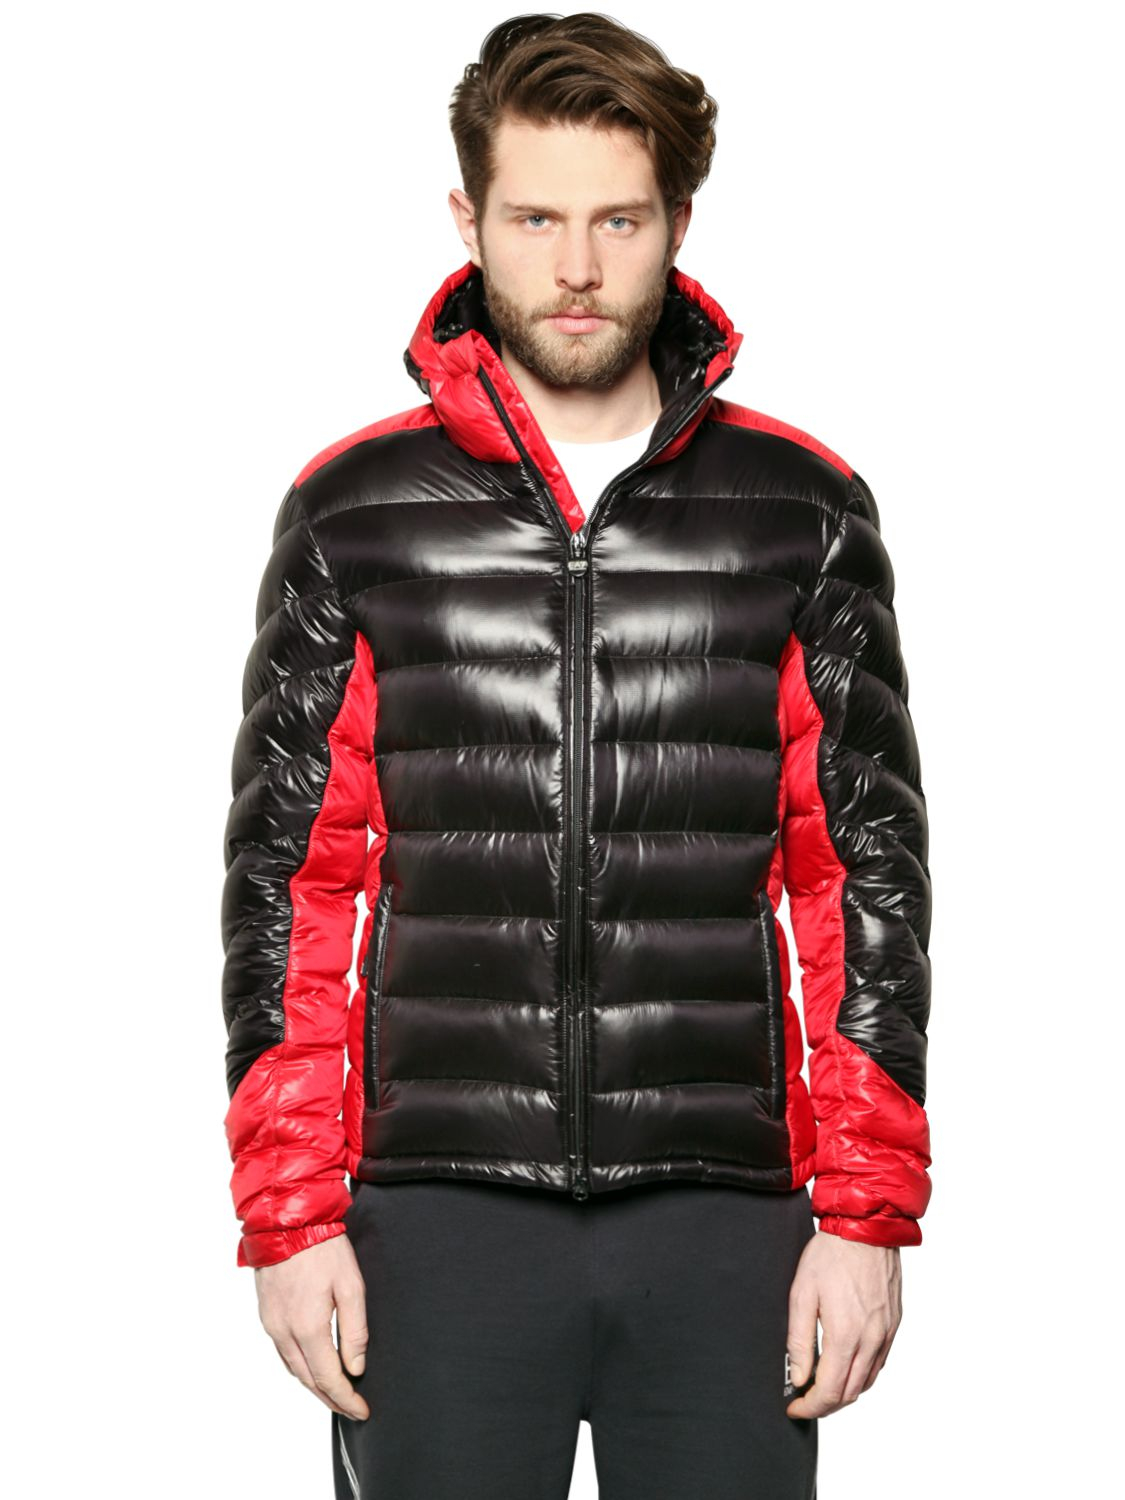 246bcded10 Emporio Armani Red Extreme Shiny Nylon Down Jacket for men